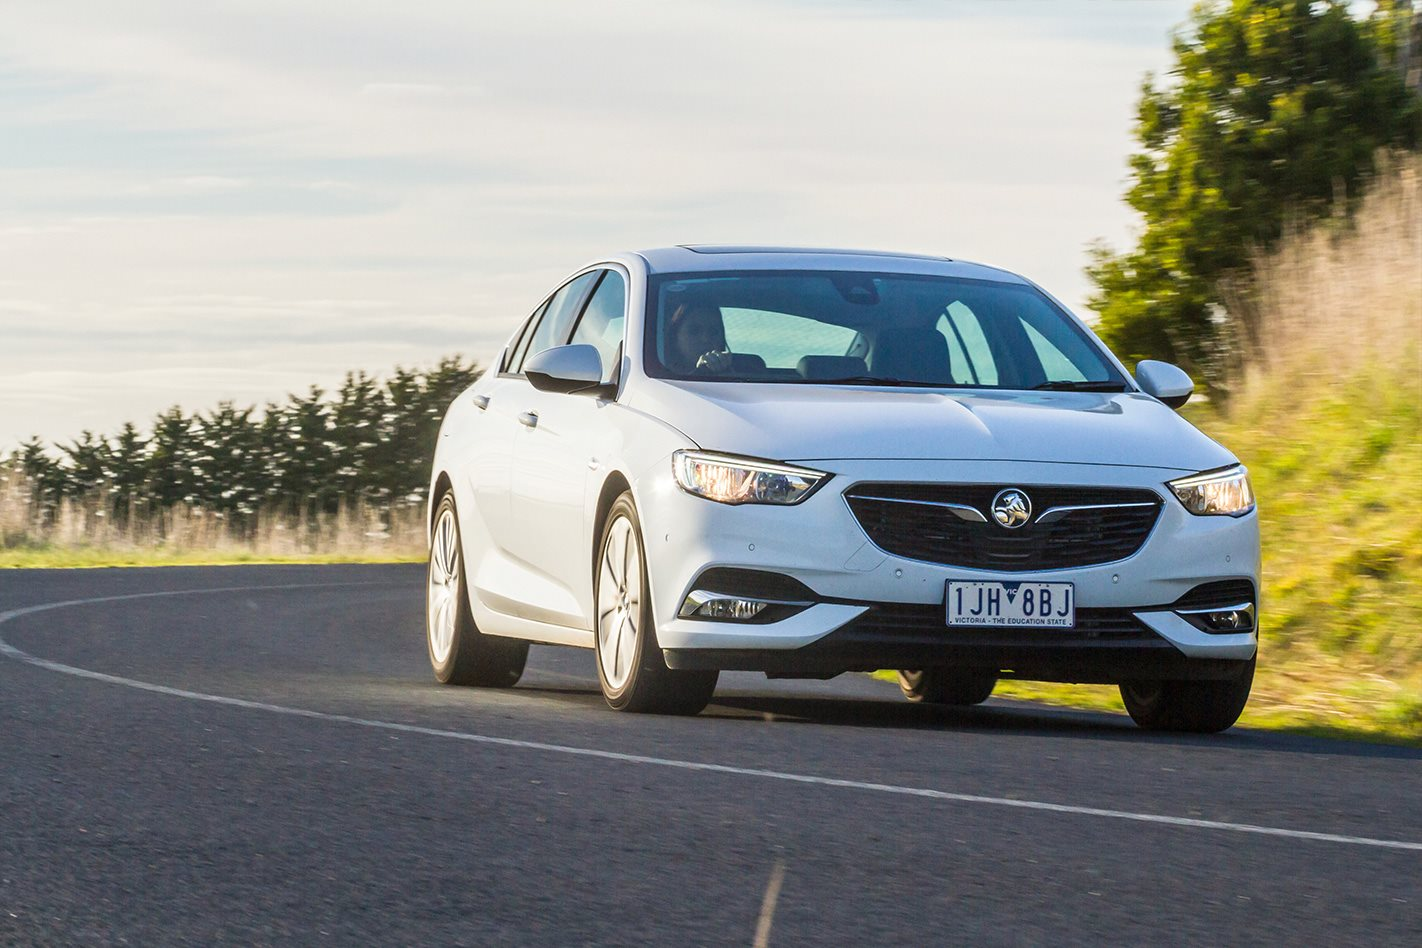 2018 Holden ZB Commodore 2 0T review